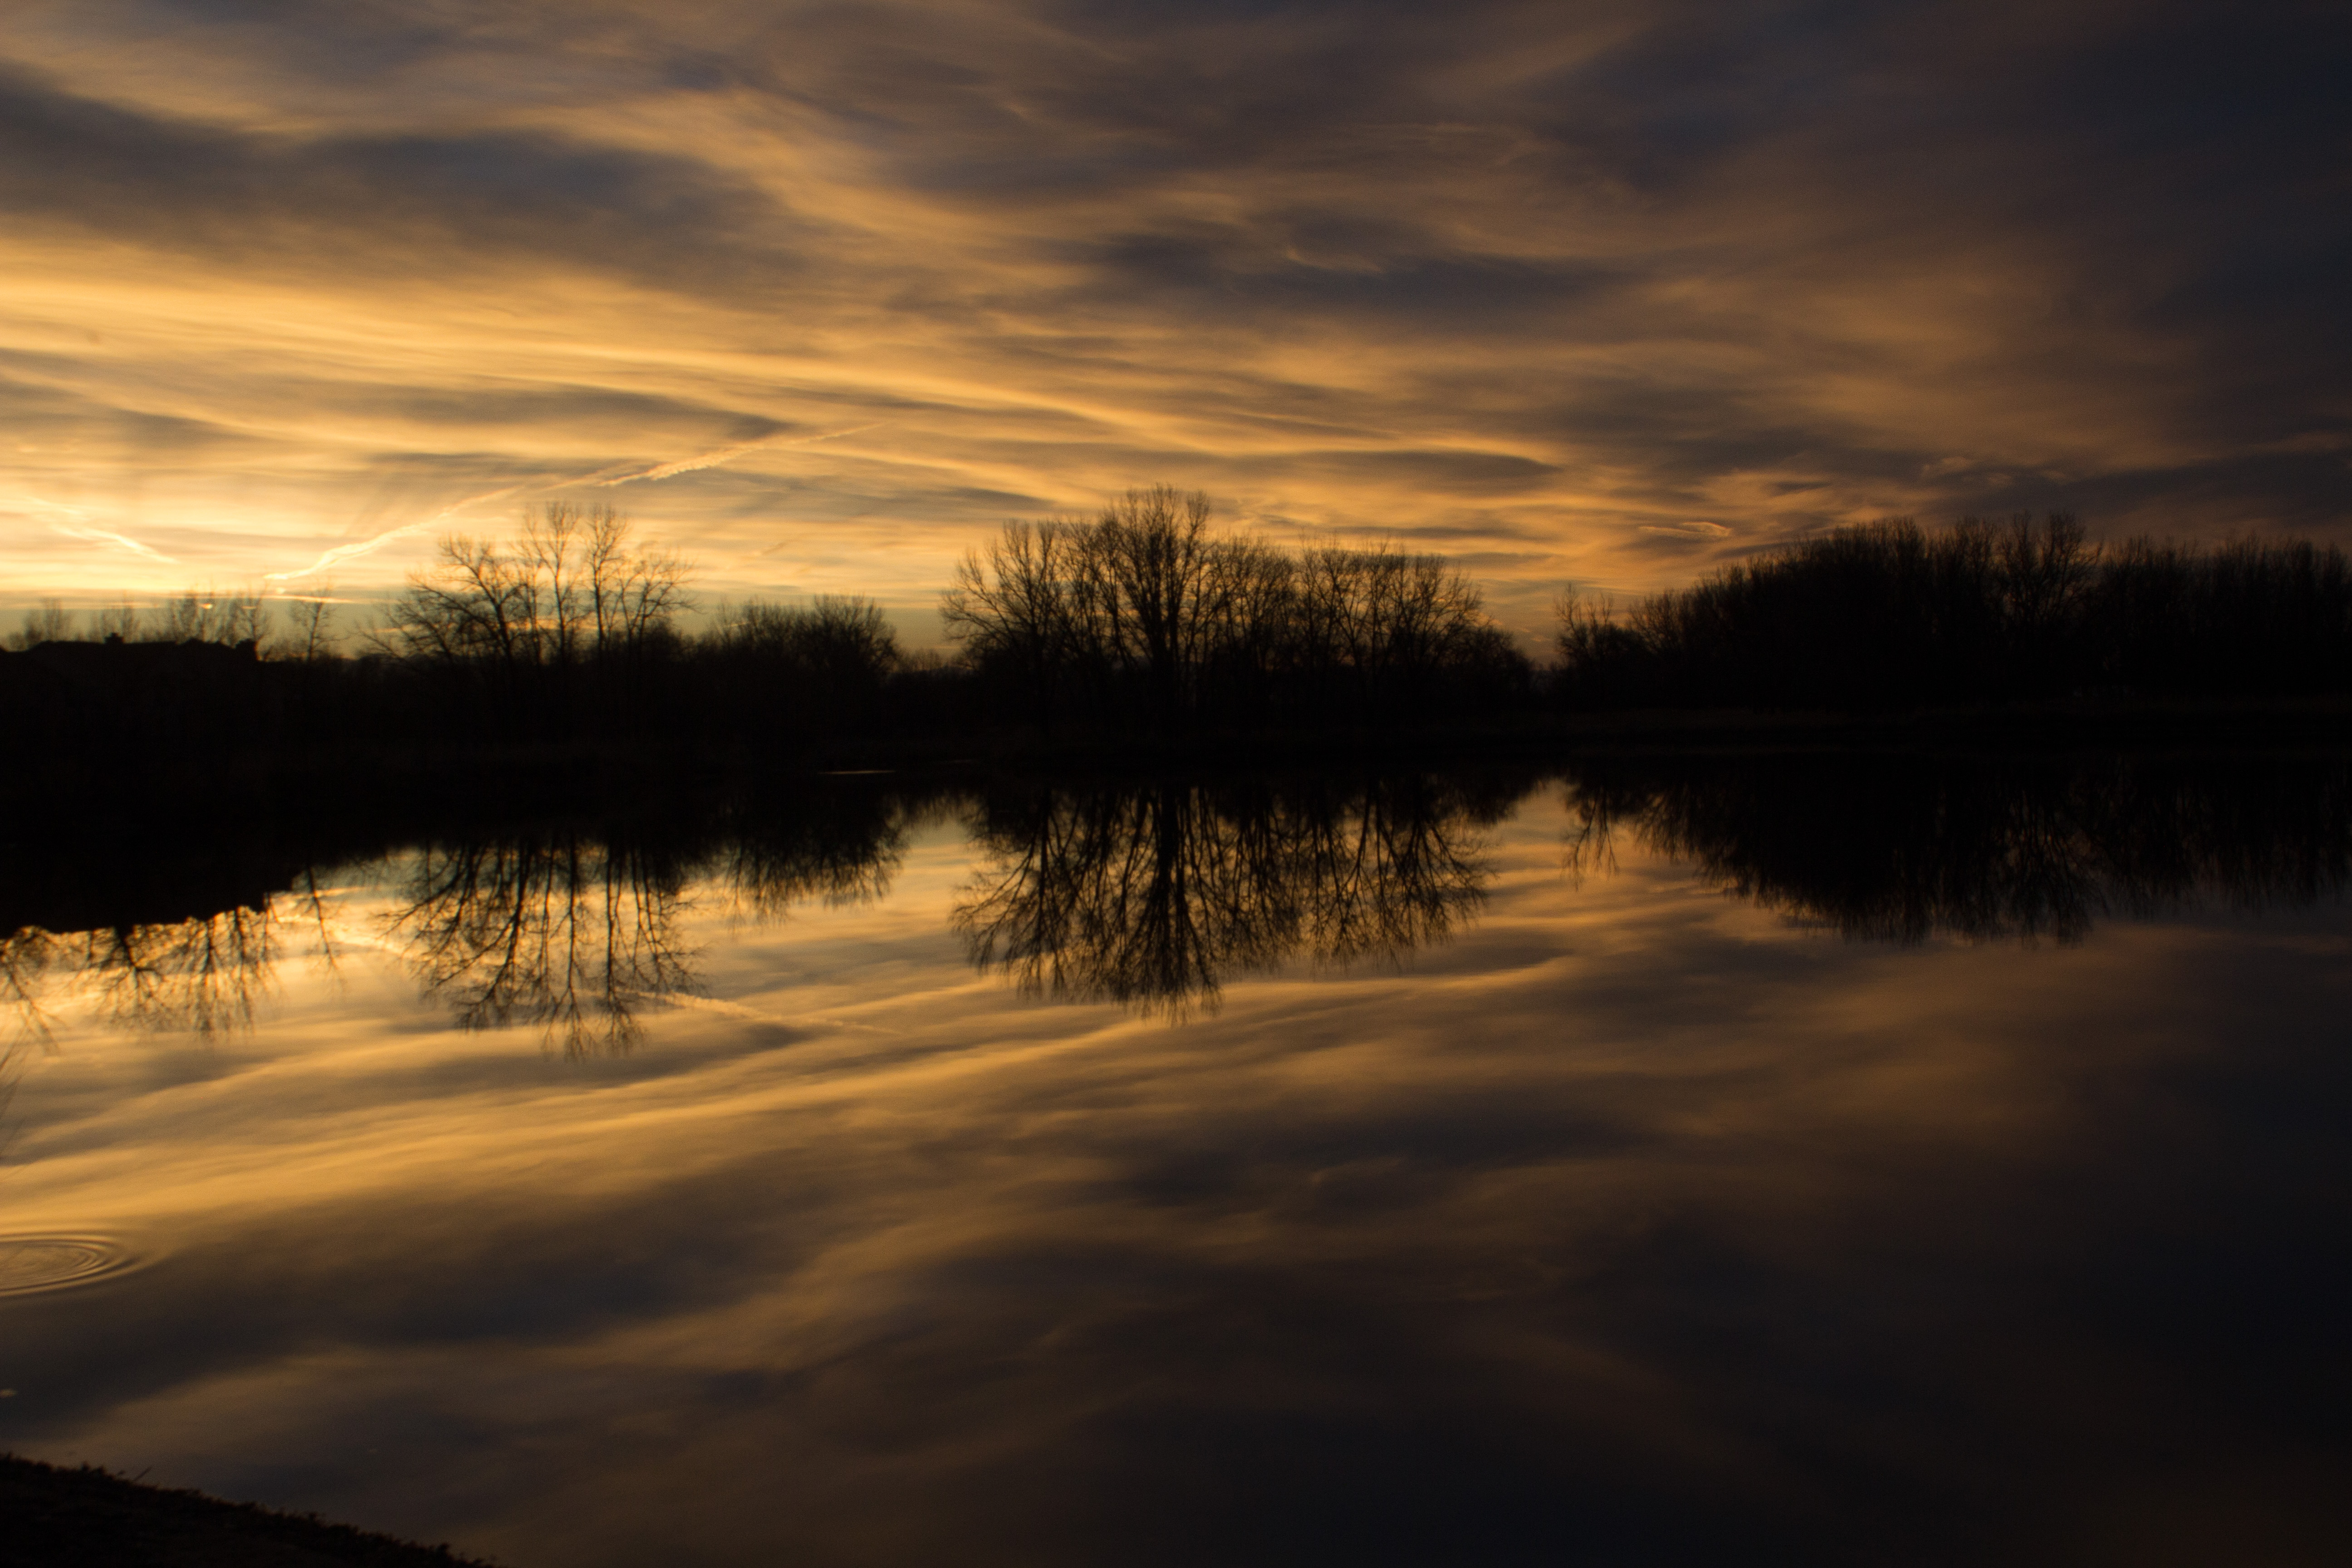 Sunset clouds reflected on still water